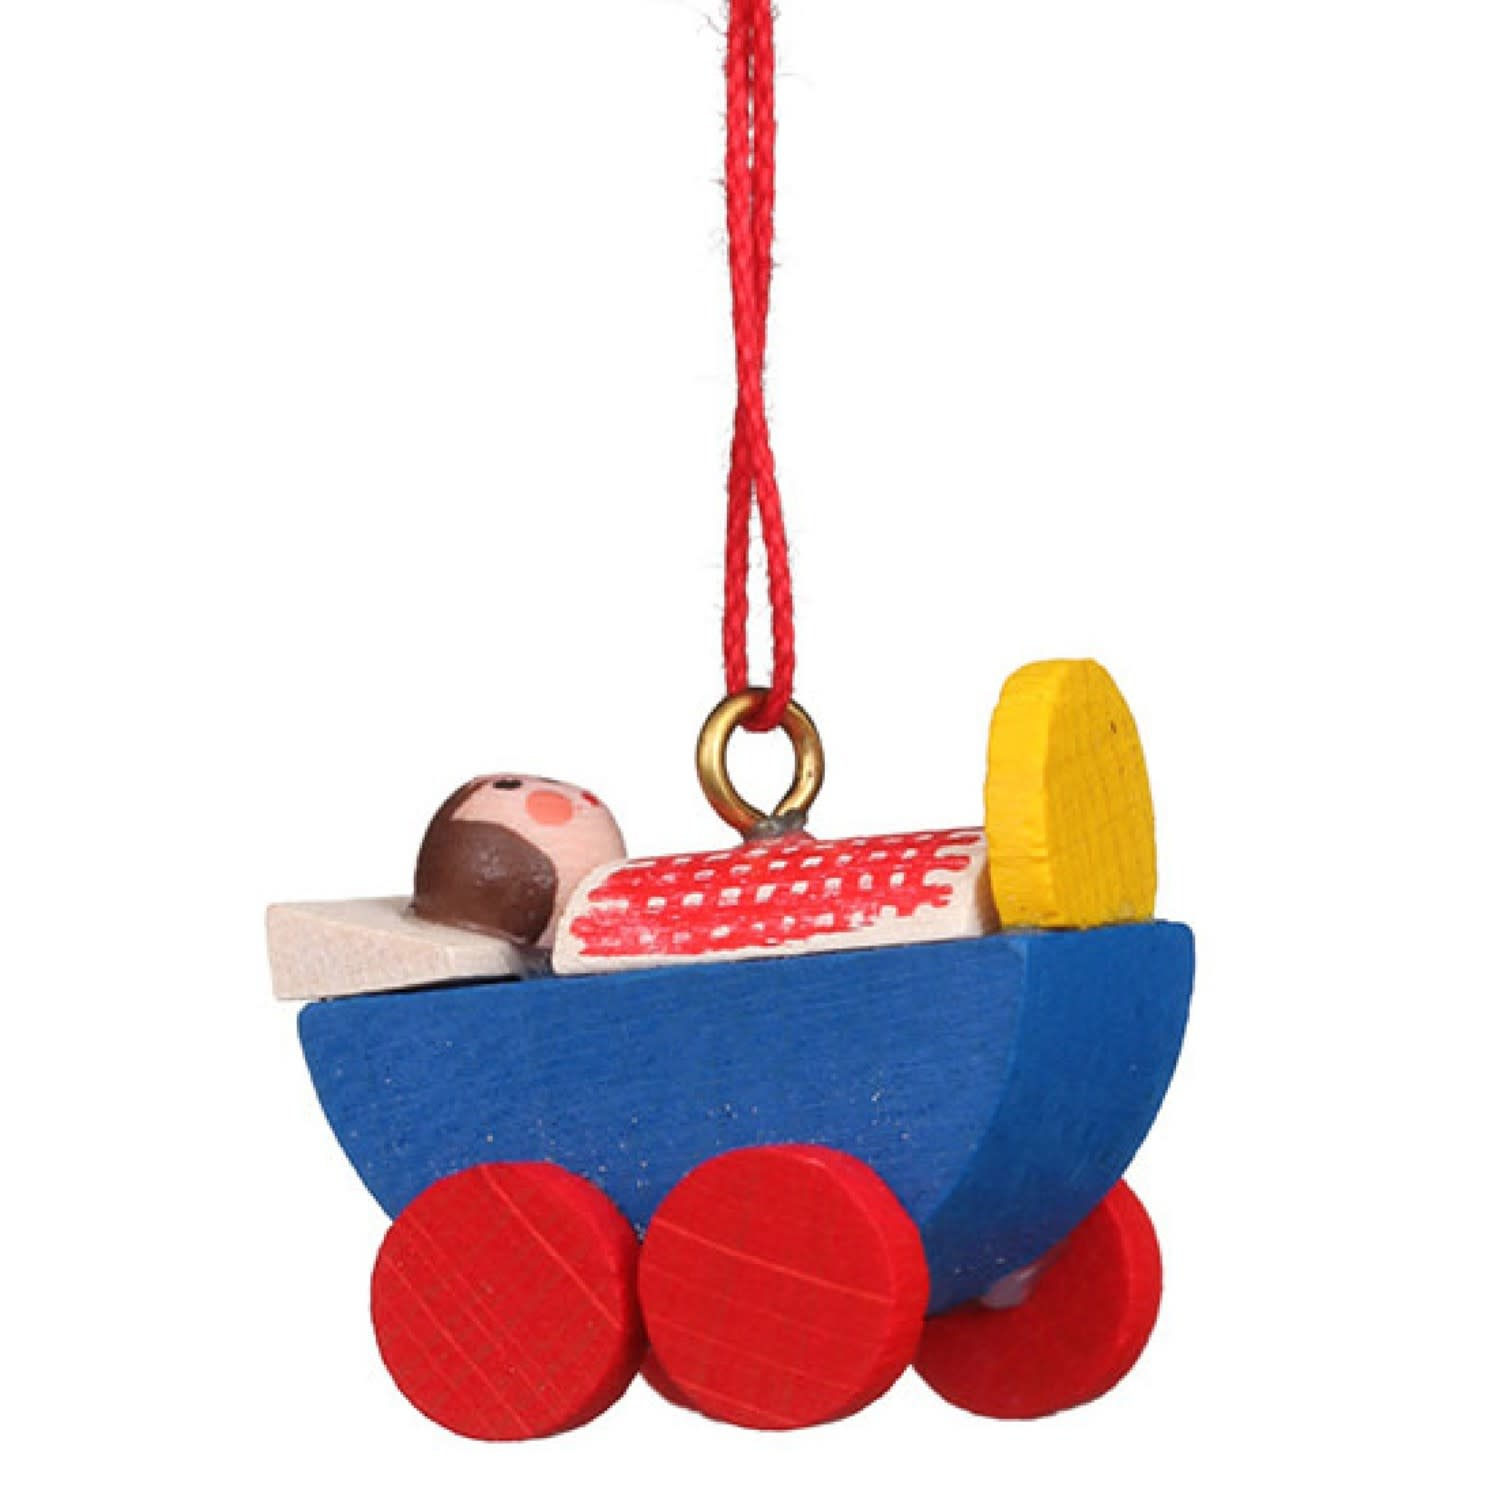 10-0085 Christian Ulbricht Ornament - Baby Carriage